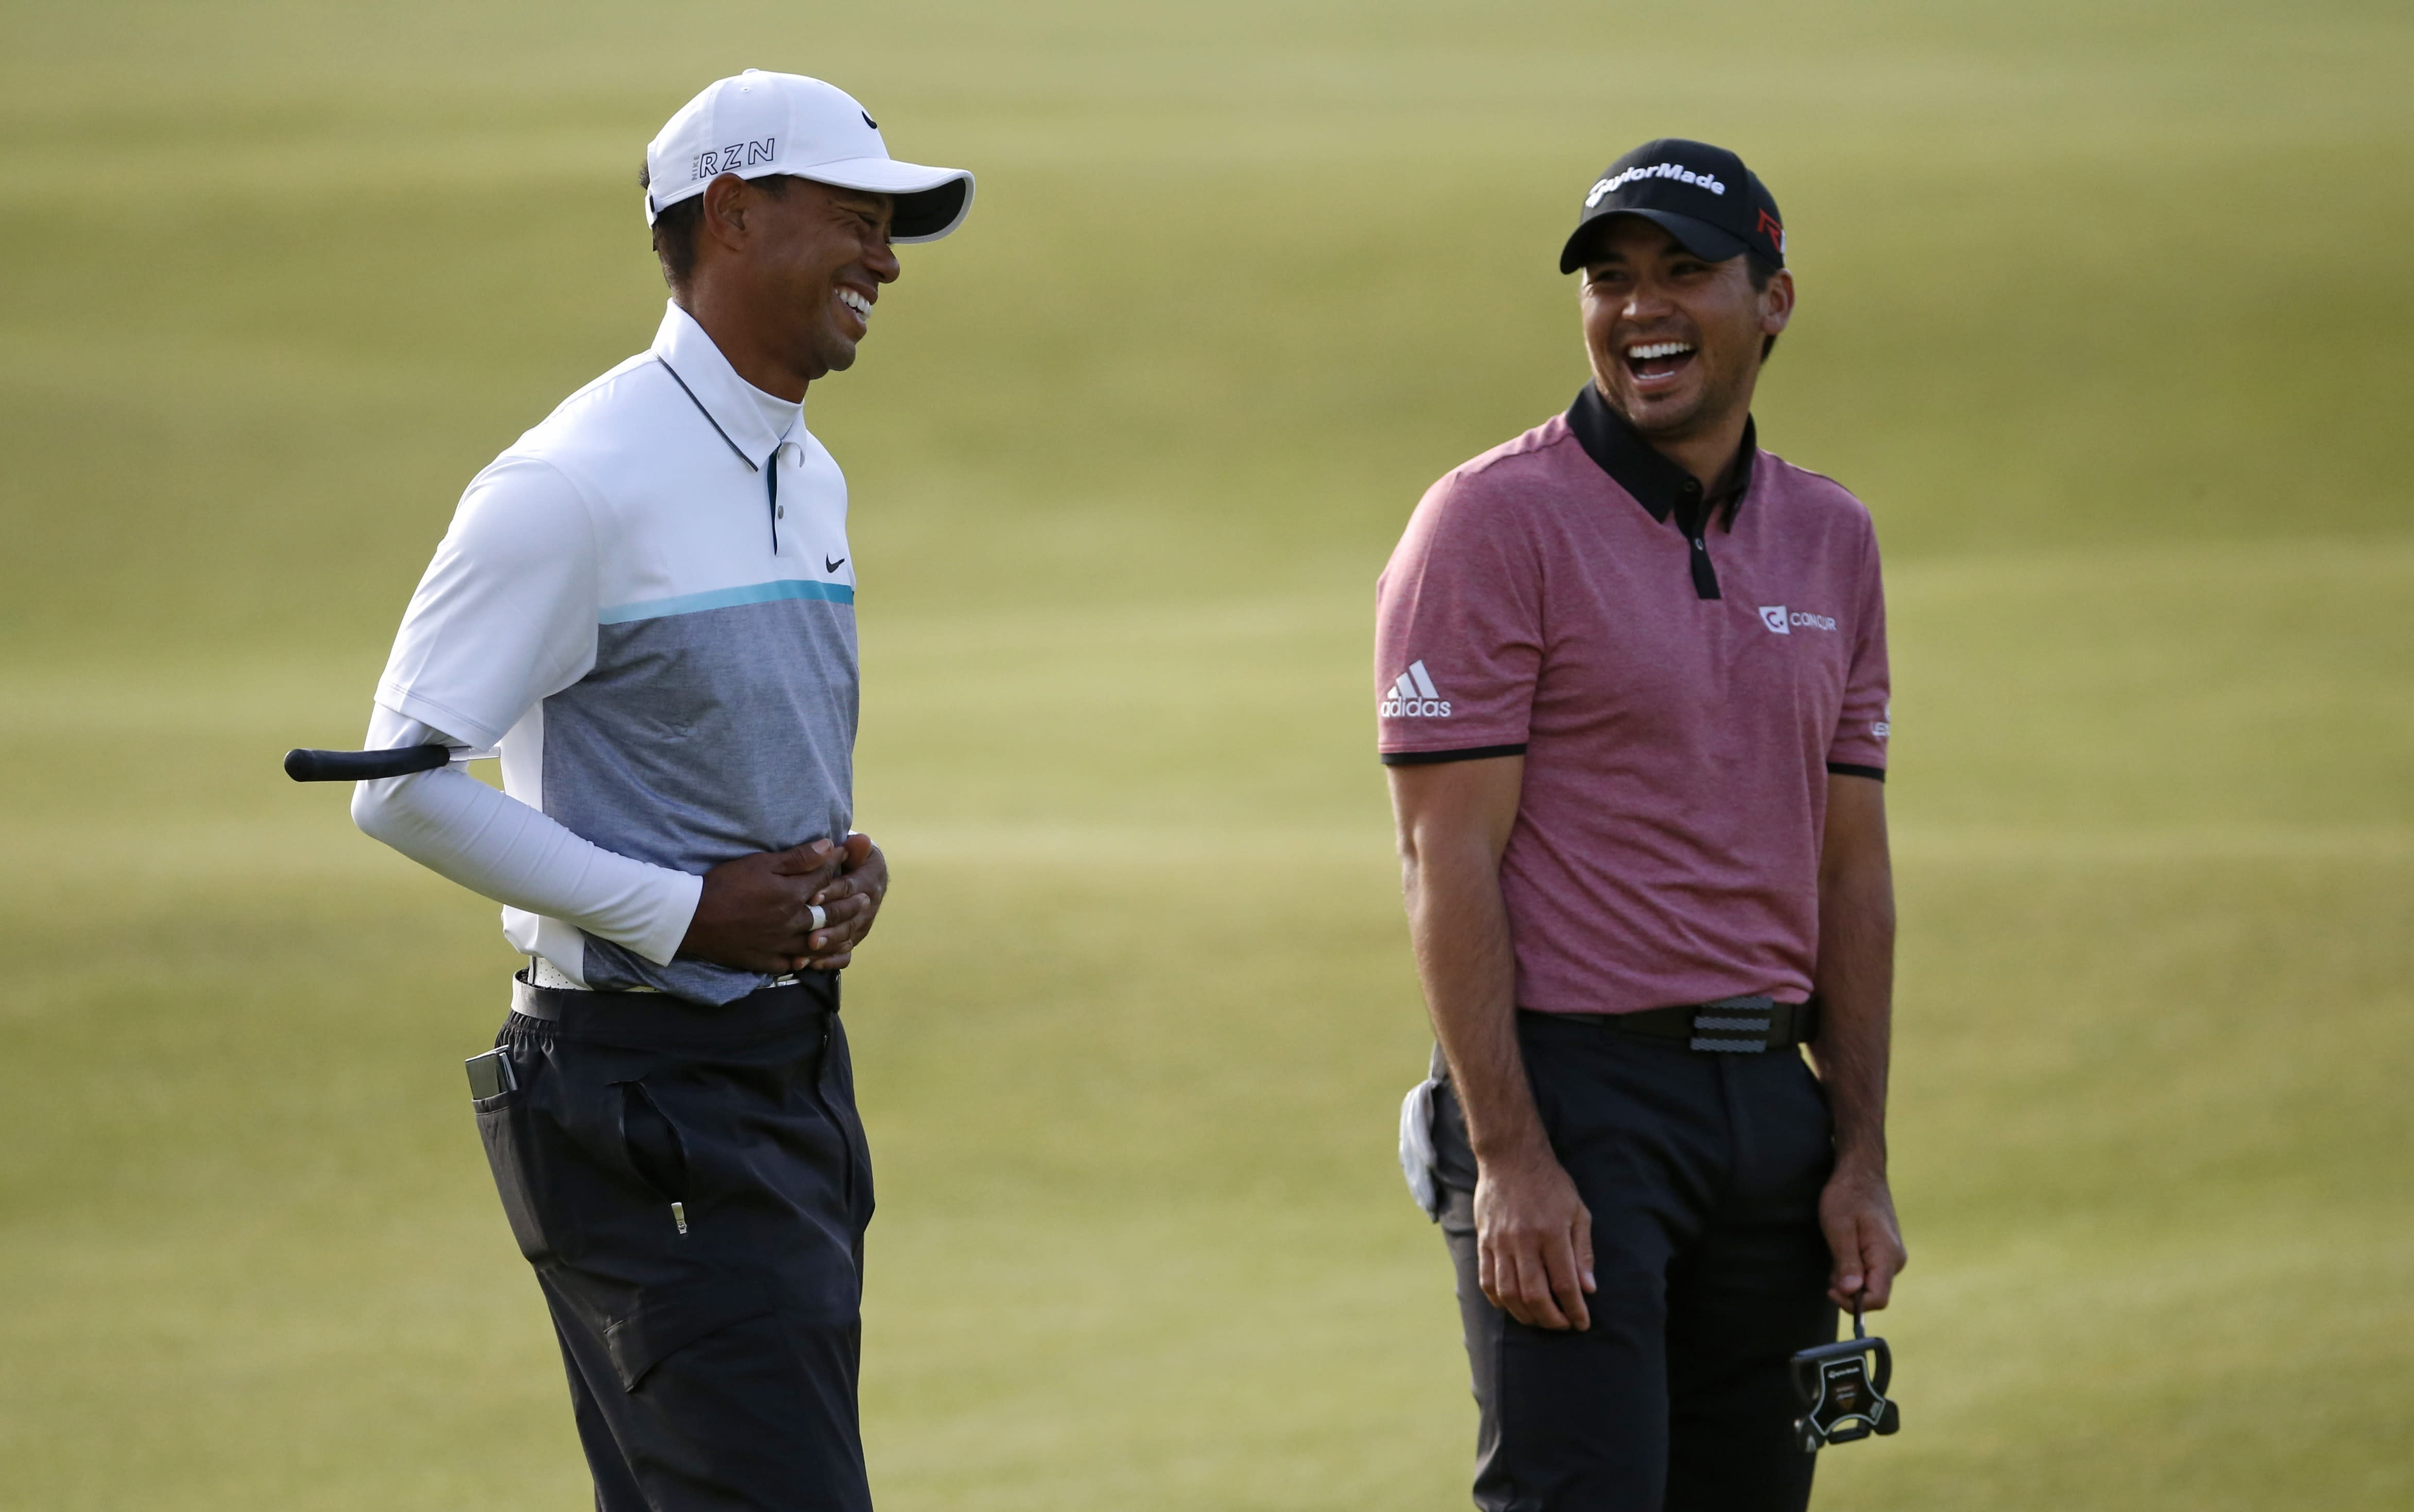 Jason Day: Tiger's texts are complicated but helping me play better